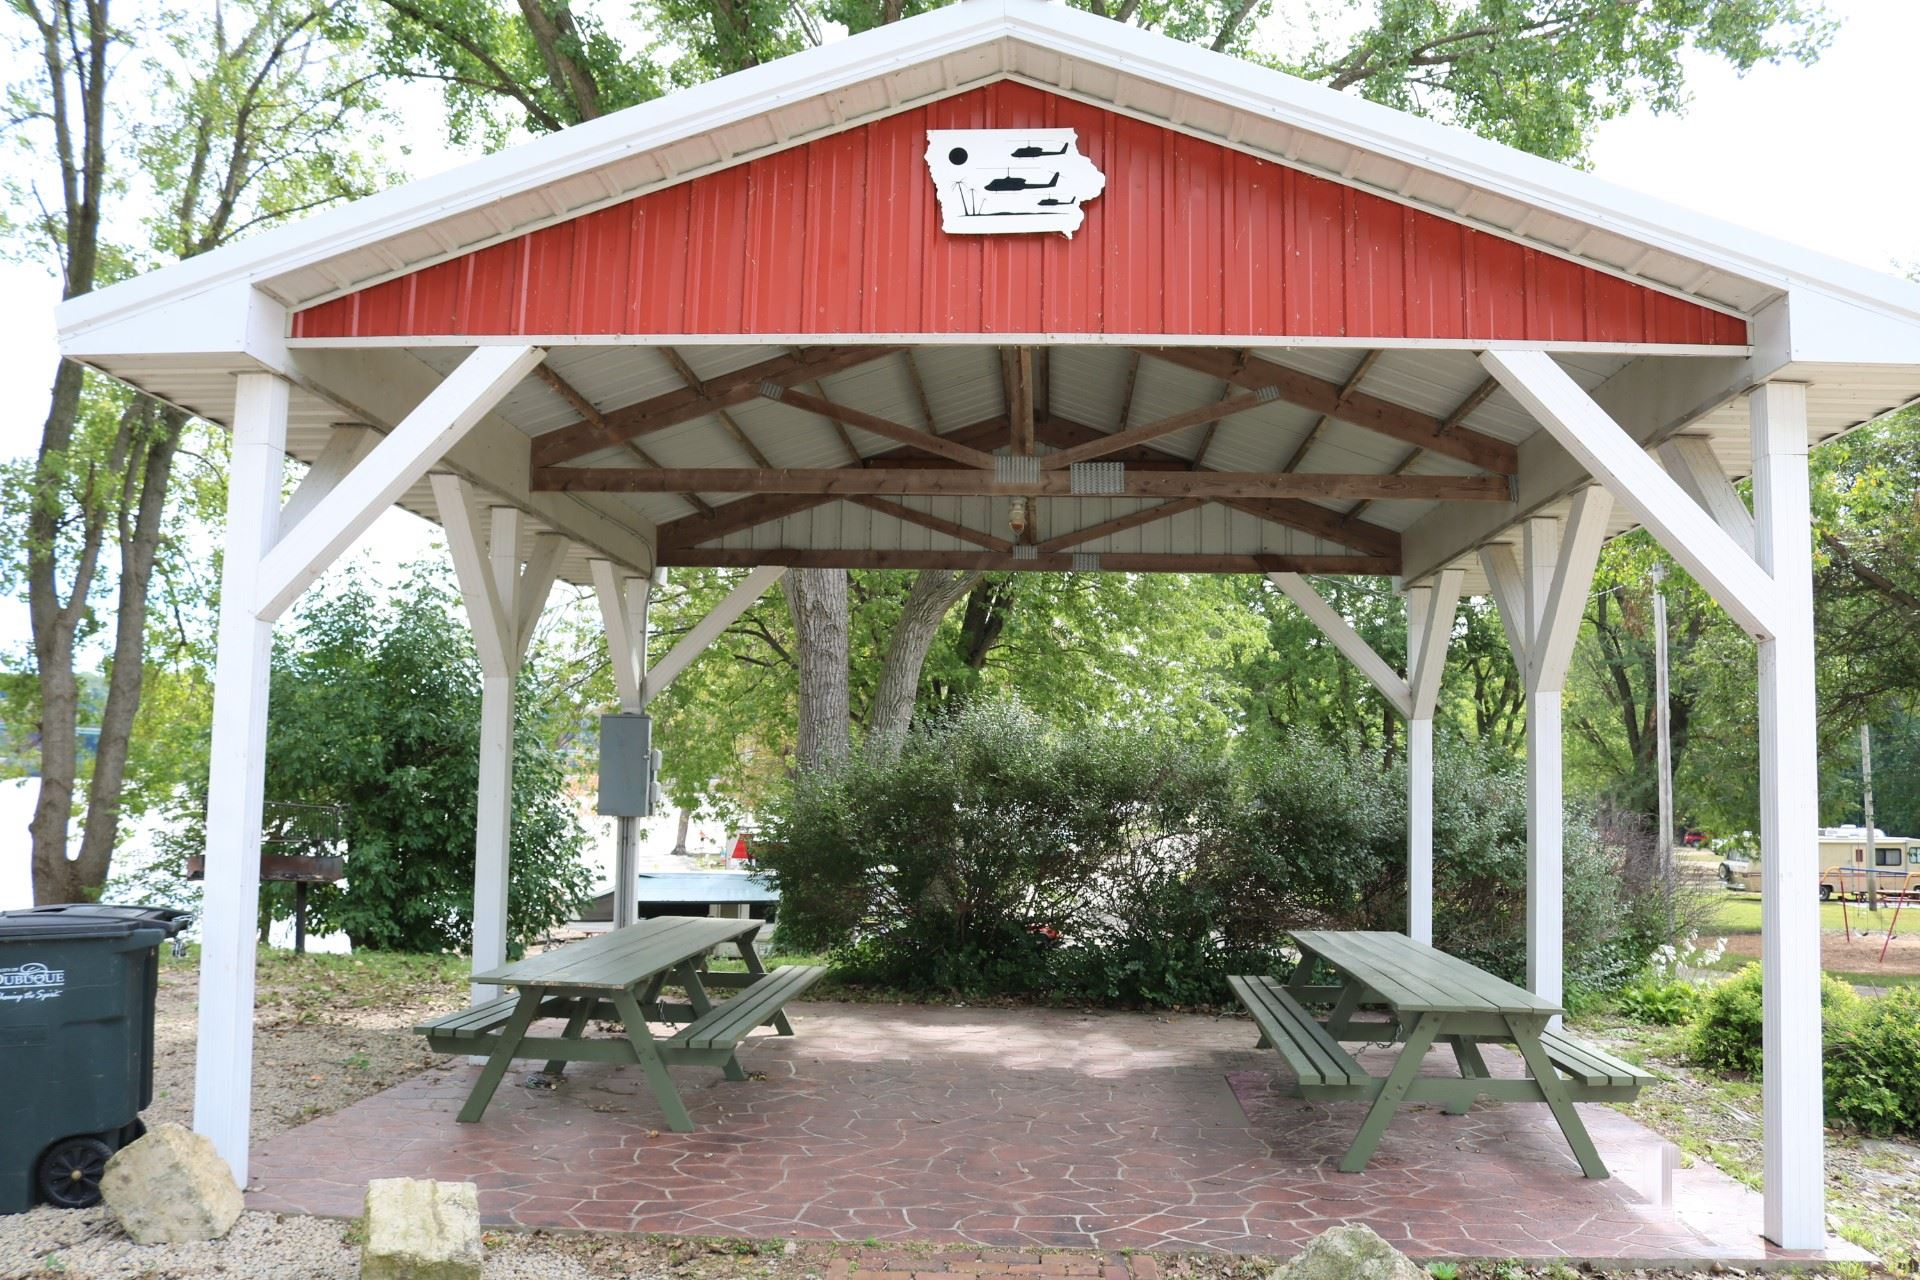 Iowa Pavilion seating: 24 people; price: $20.00. Handicapped accessible, 15 amp electricity, picnic